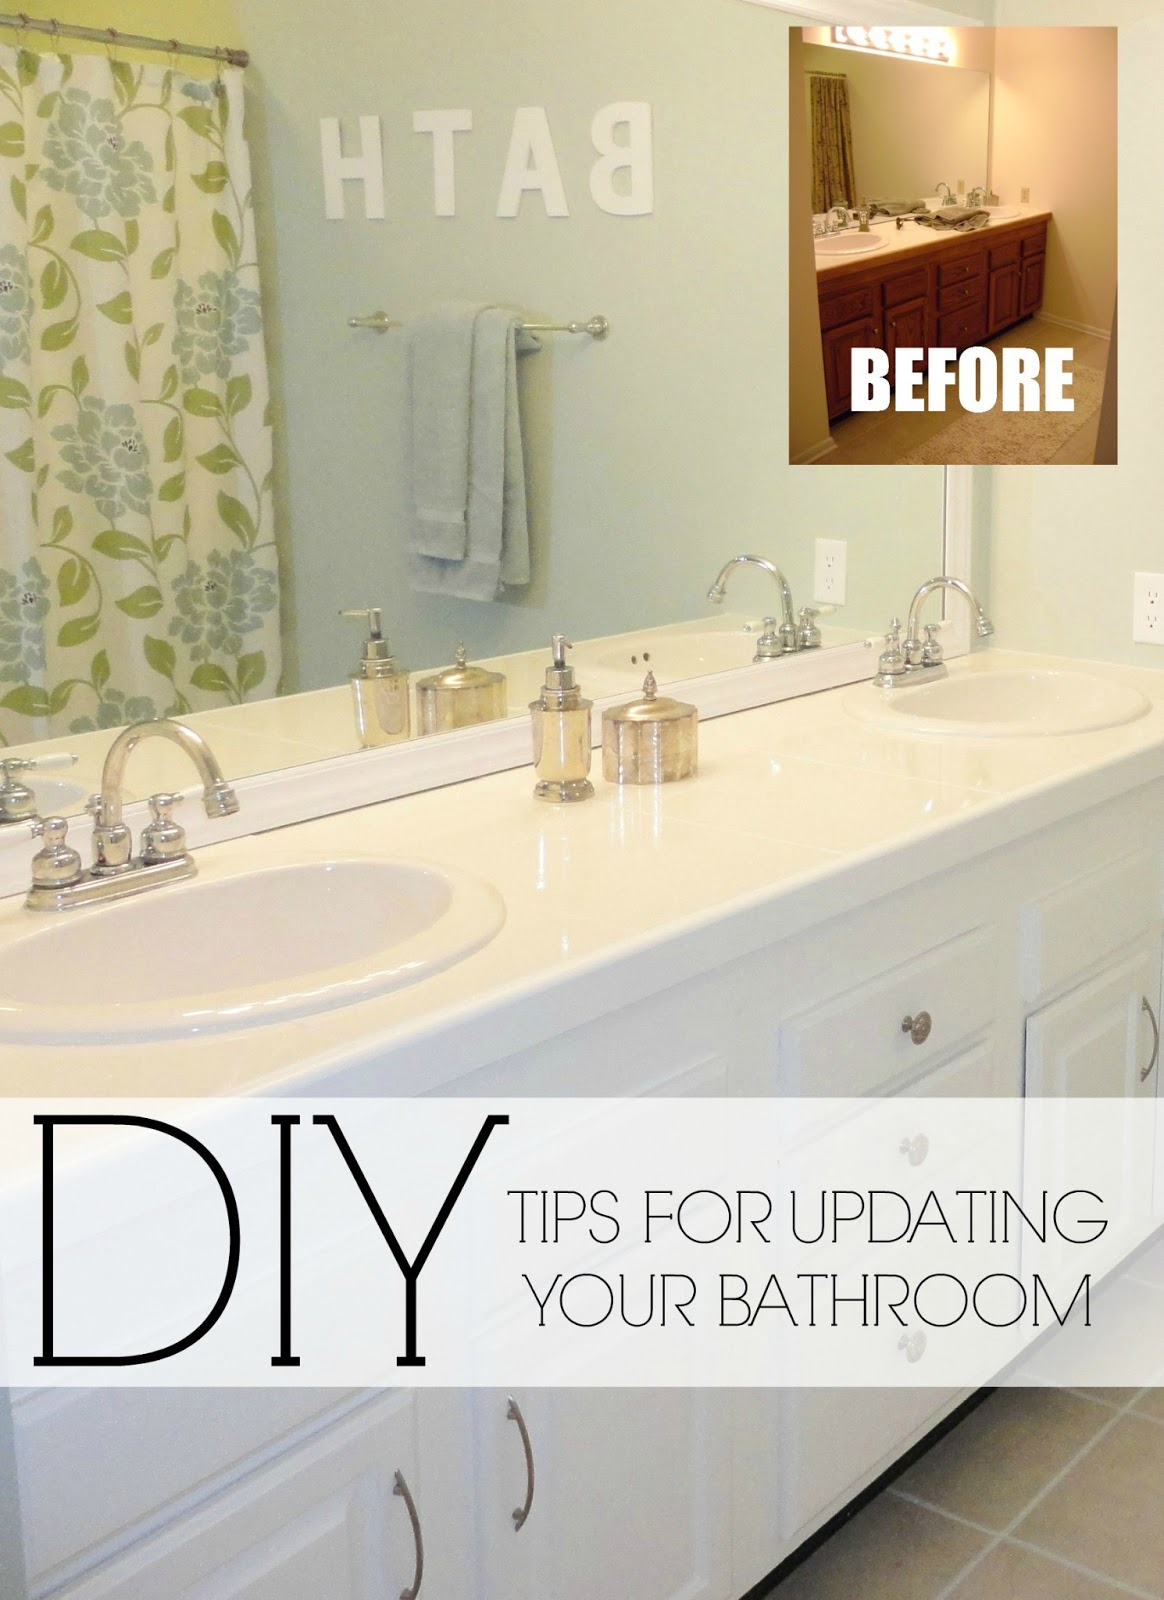 Bathroom mirror ideas diy - Easy Diy Ideas For Updating Your Bathroom